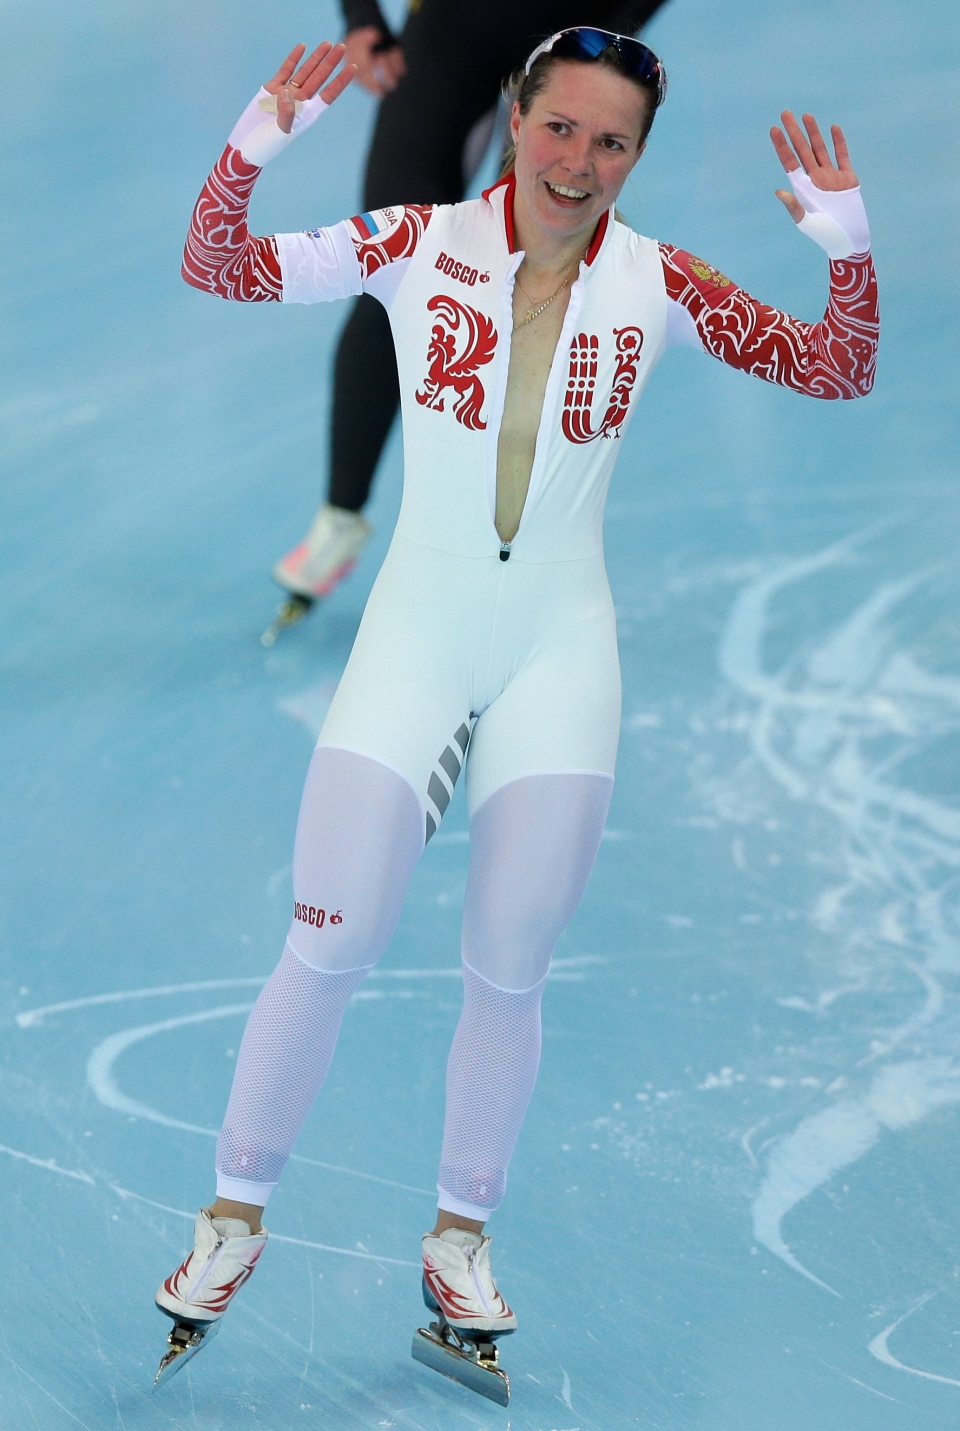 Bronze medallist Olga Graf of Russia celebrates with a wide-open front of her skin suit after the women's 3,000-metre speedskating race at the Adler Arena Skating Center during the 2014 Winter Olympics on Feb. 9, 2014. (AP Photo/Pavel Golovkin)